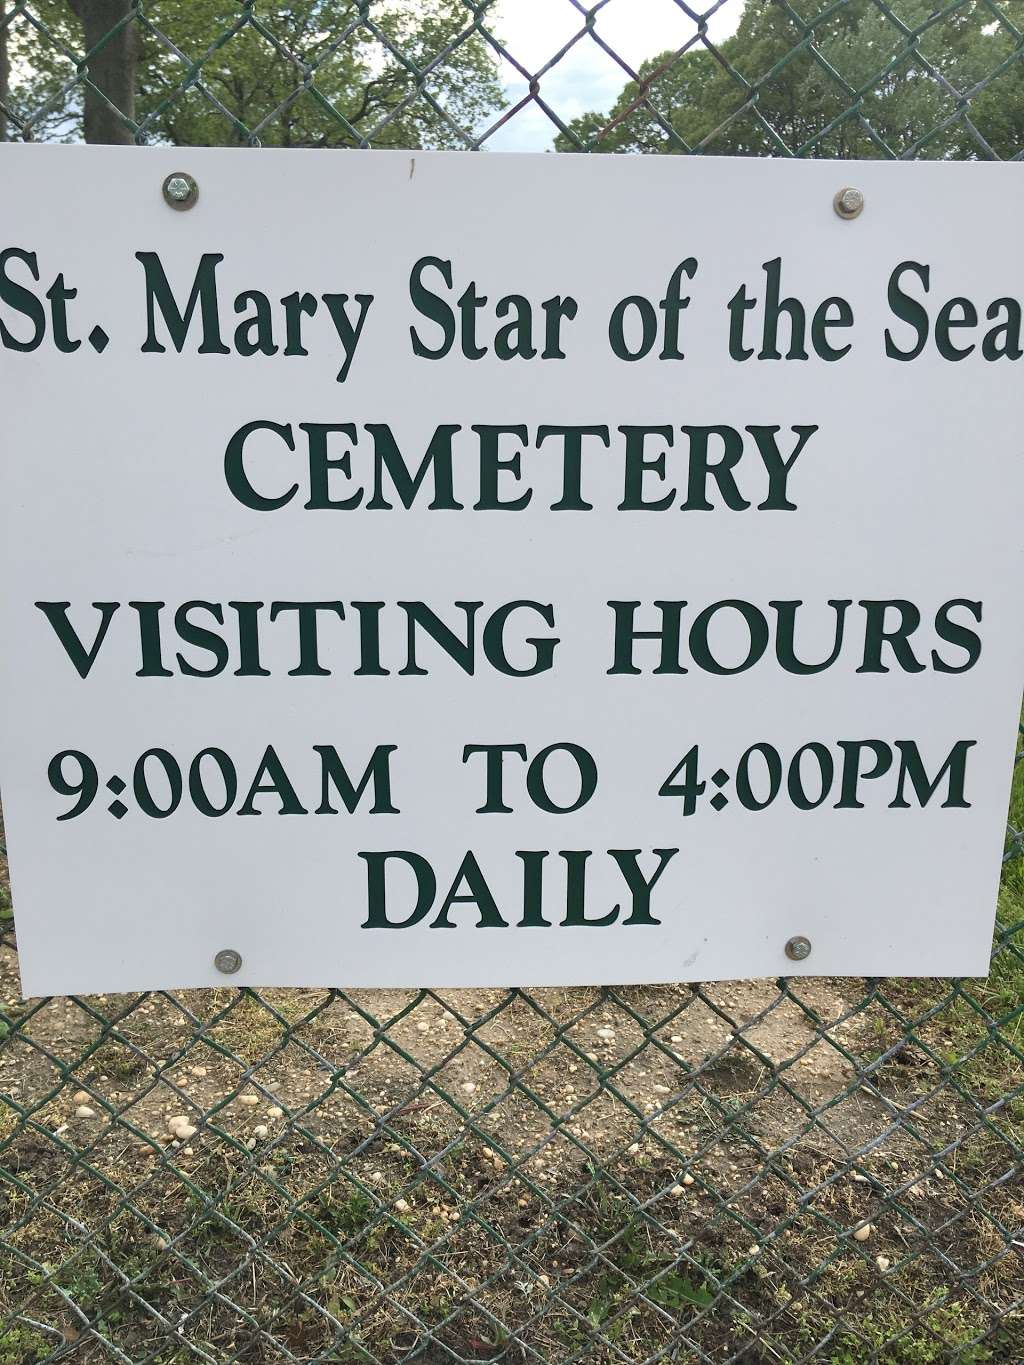 St Mary Star of the Sea - cemetery  | Photo 1 of 1 | Address: Rockaway Turnpike, Lawrence, NY 11559, USA | Phone: (516) 239-8296